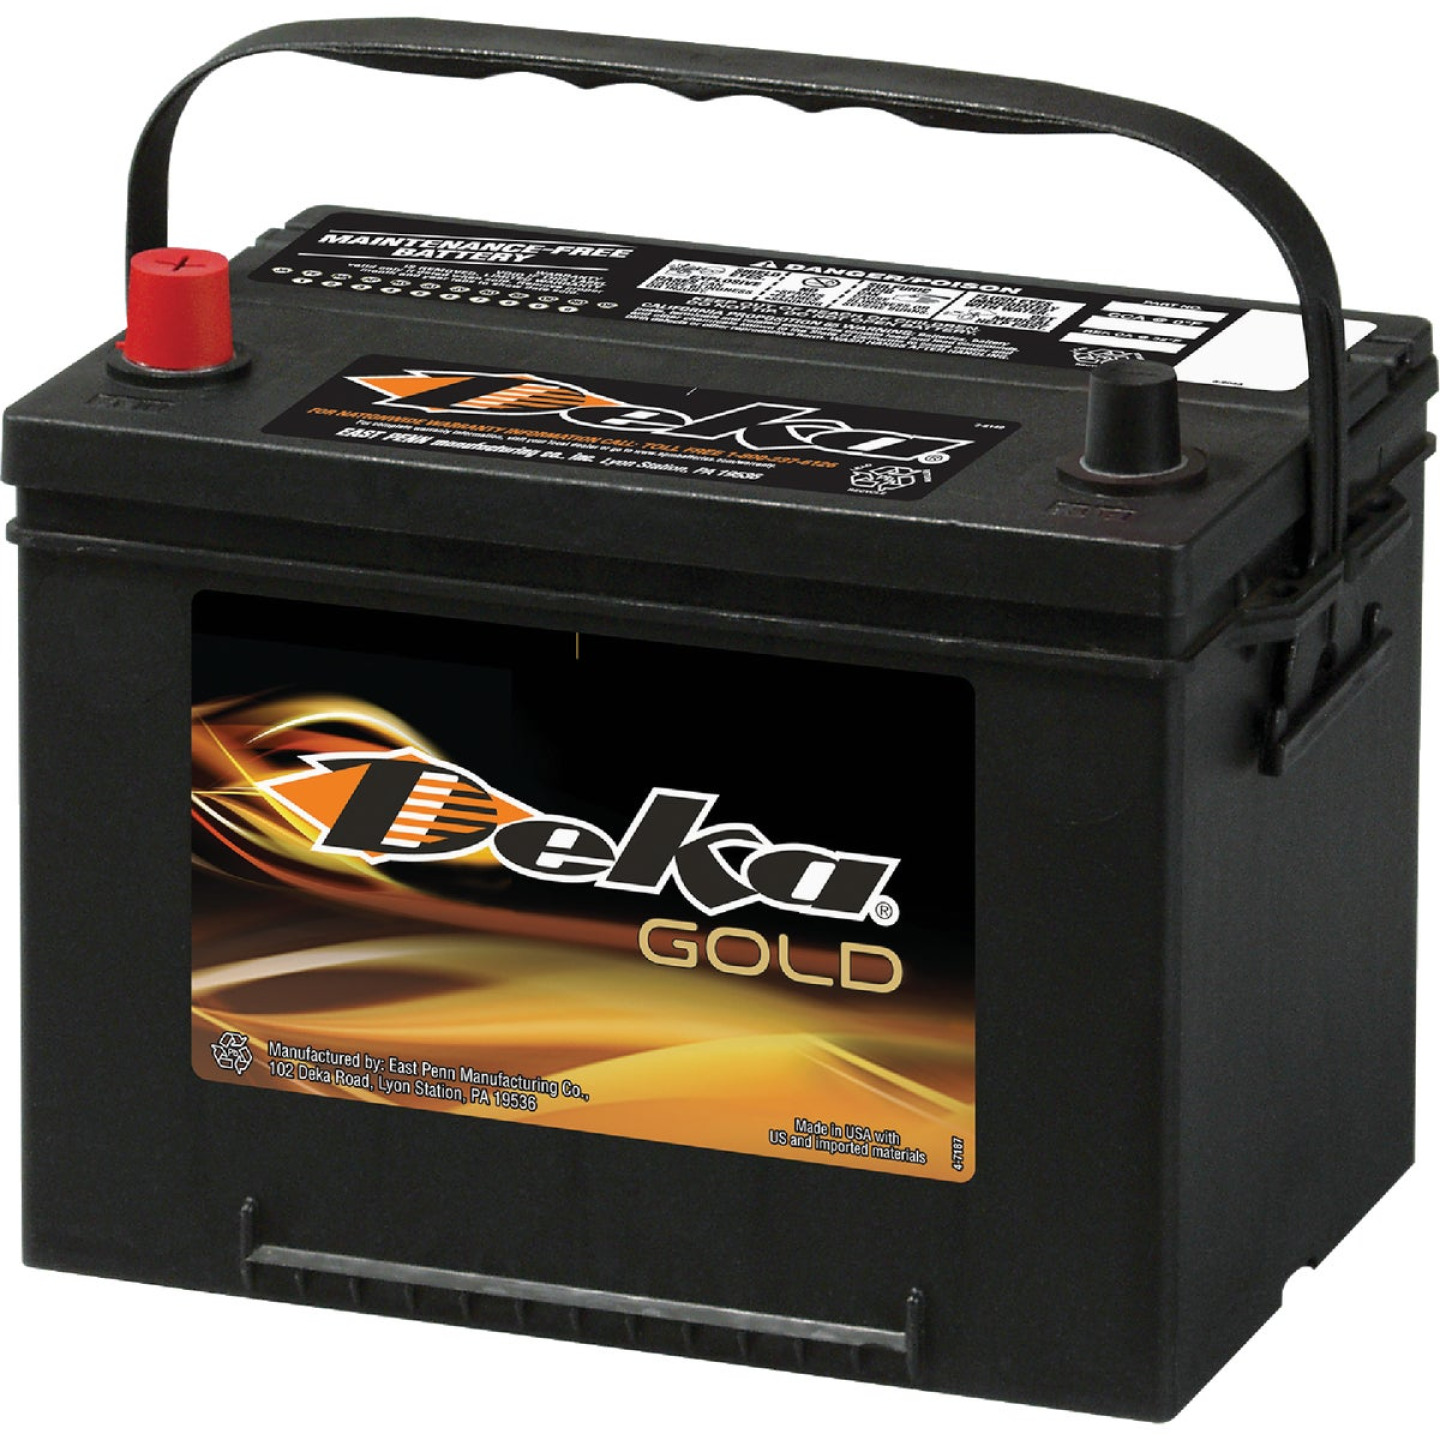 Deka Gold 12-Volt 690 CCA Automotive Battery, Top Post Left Front Positive Terminal Image 1